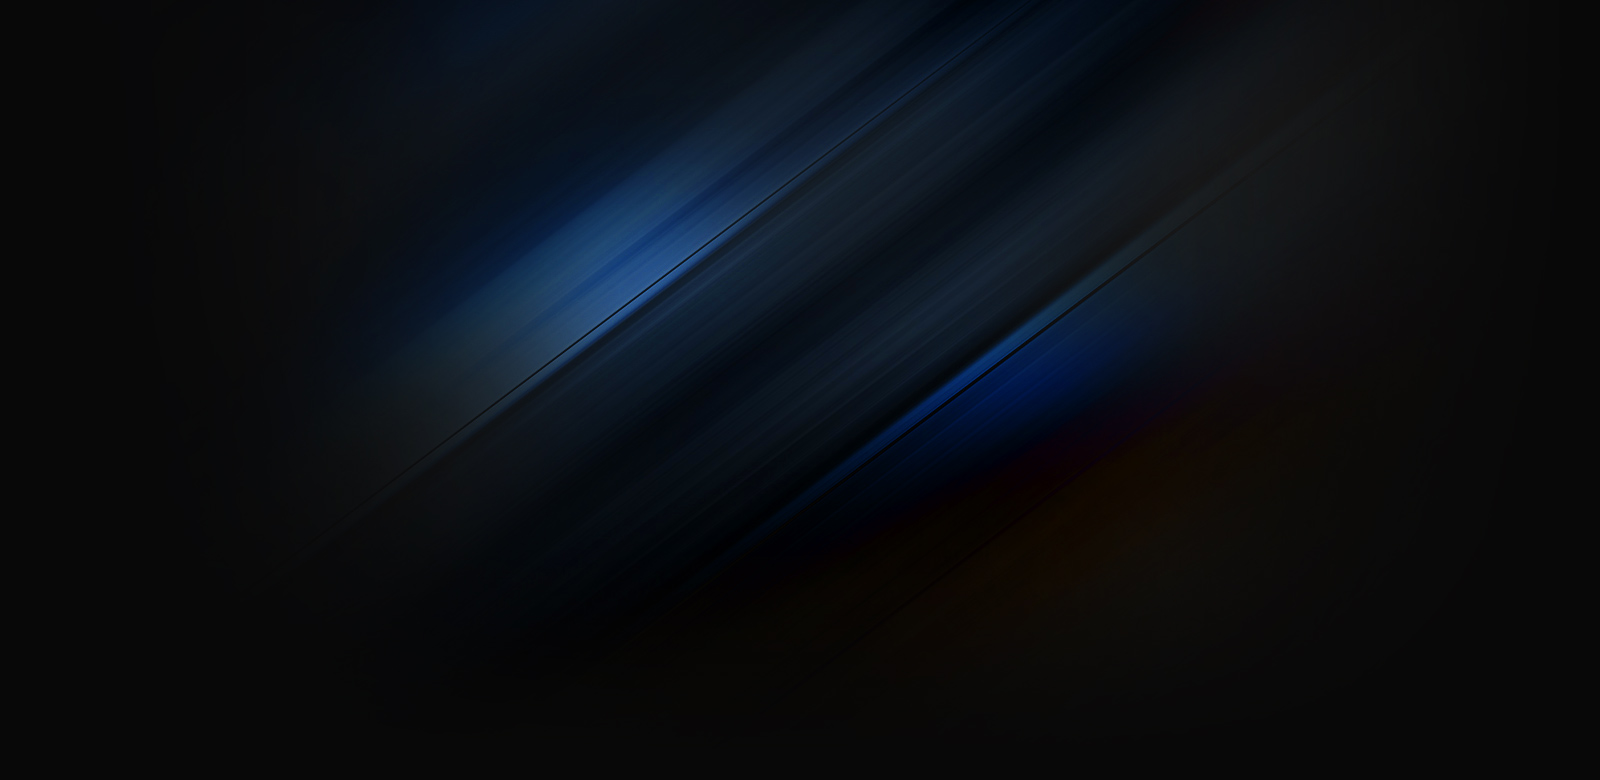 background_p3_7